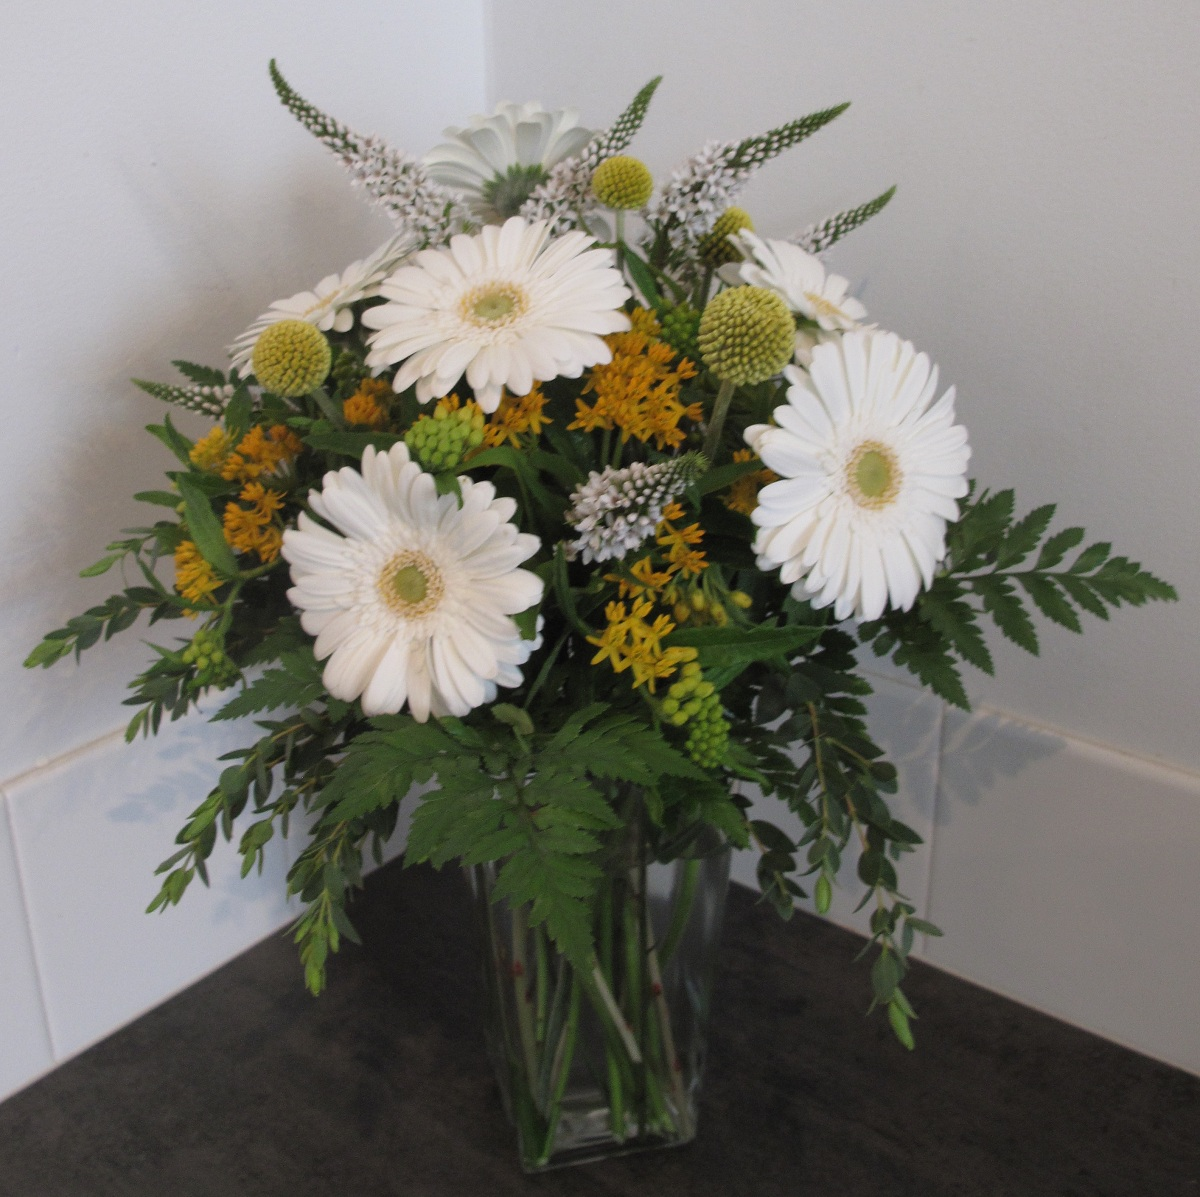 Flower arrangements gallery floral sunshine happy go lucky white gerbera daisy billy balls asclepsia floral medium arrangement izmirmasajfo